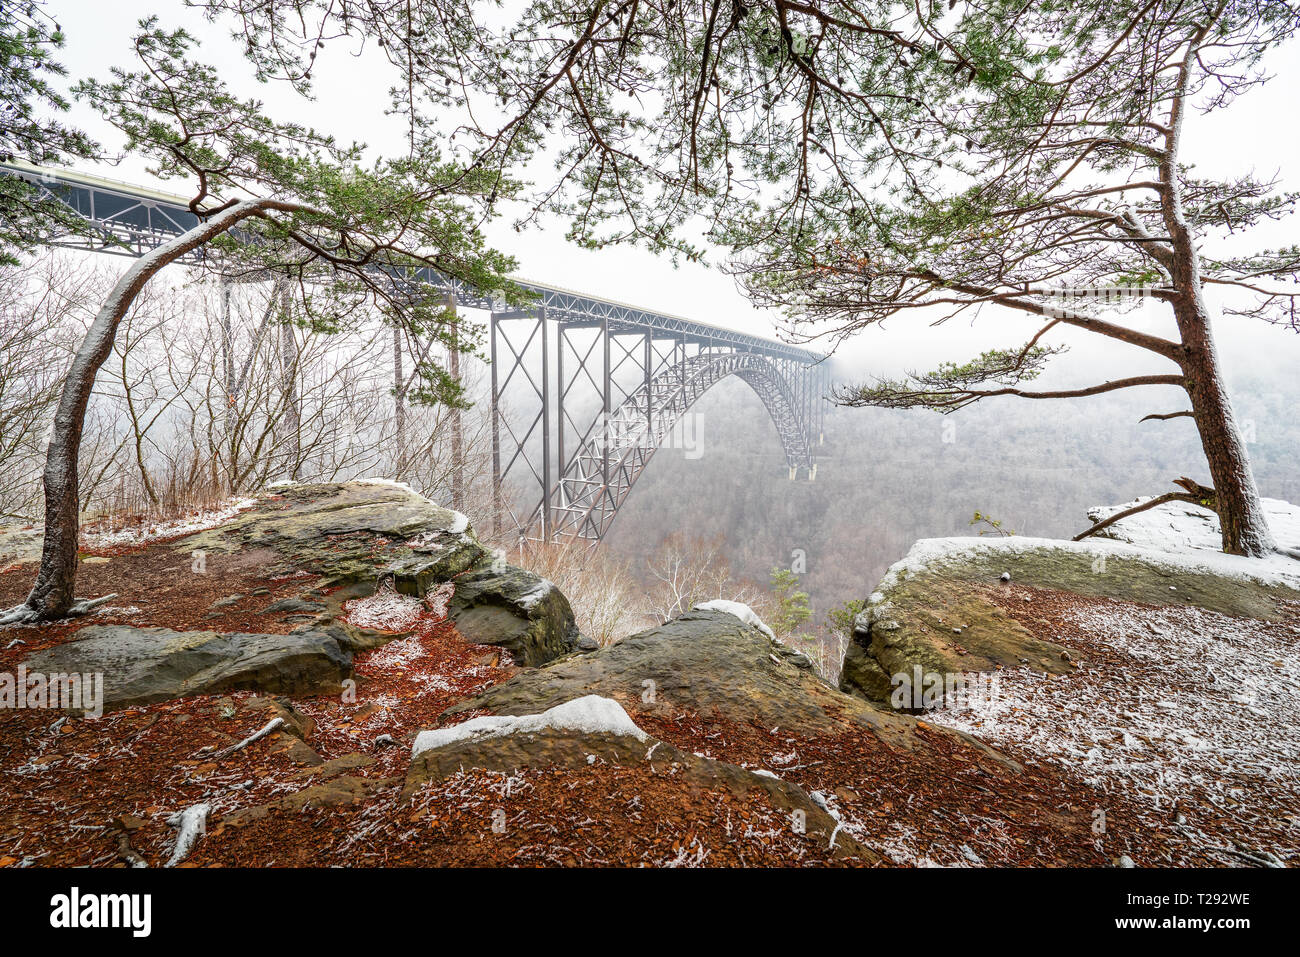 The expansive New River Gorge Bridge of West Virginia appears to nearly float in the foggy air viewed through a window of snow dusted rock and pine. - Stock Image